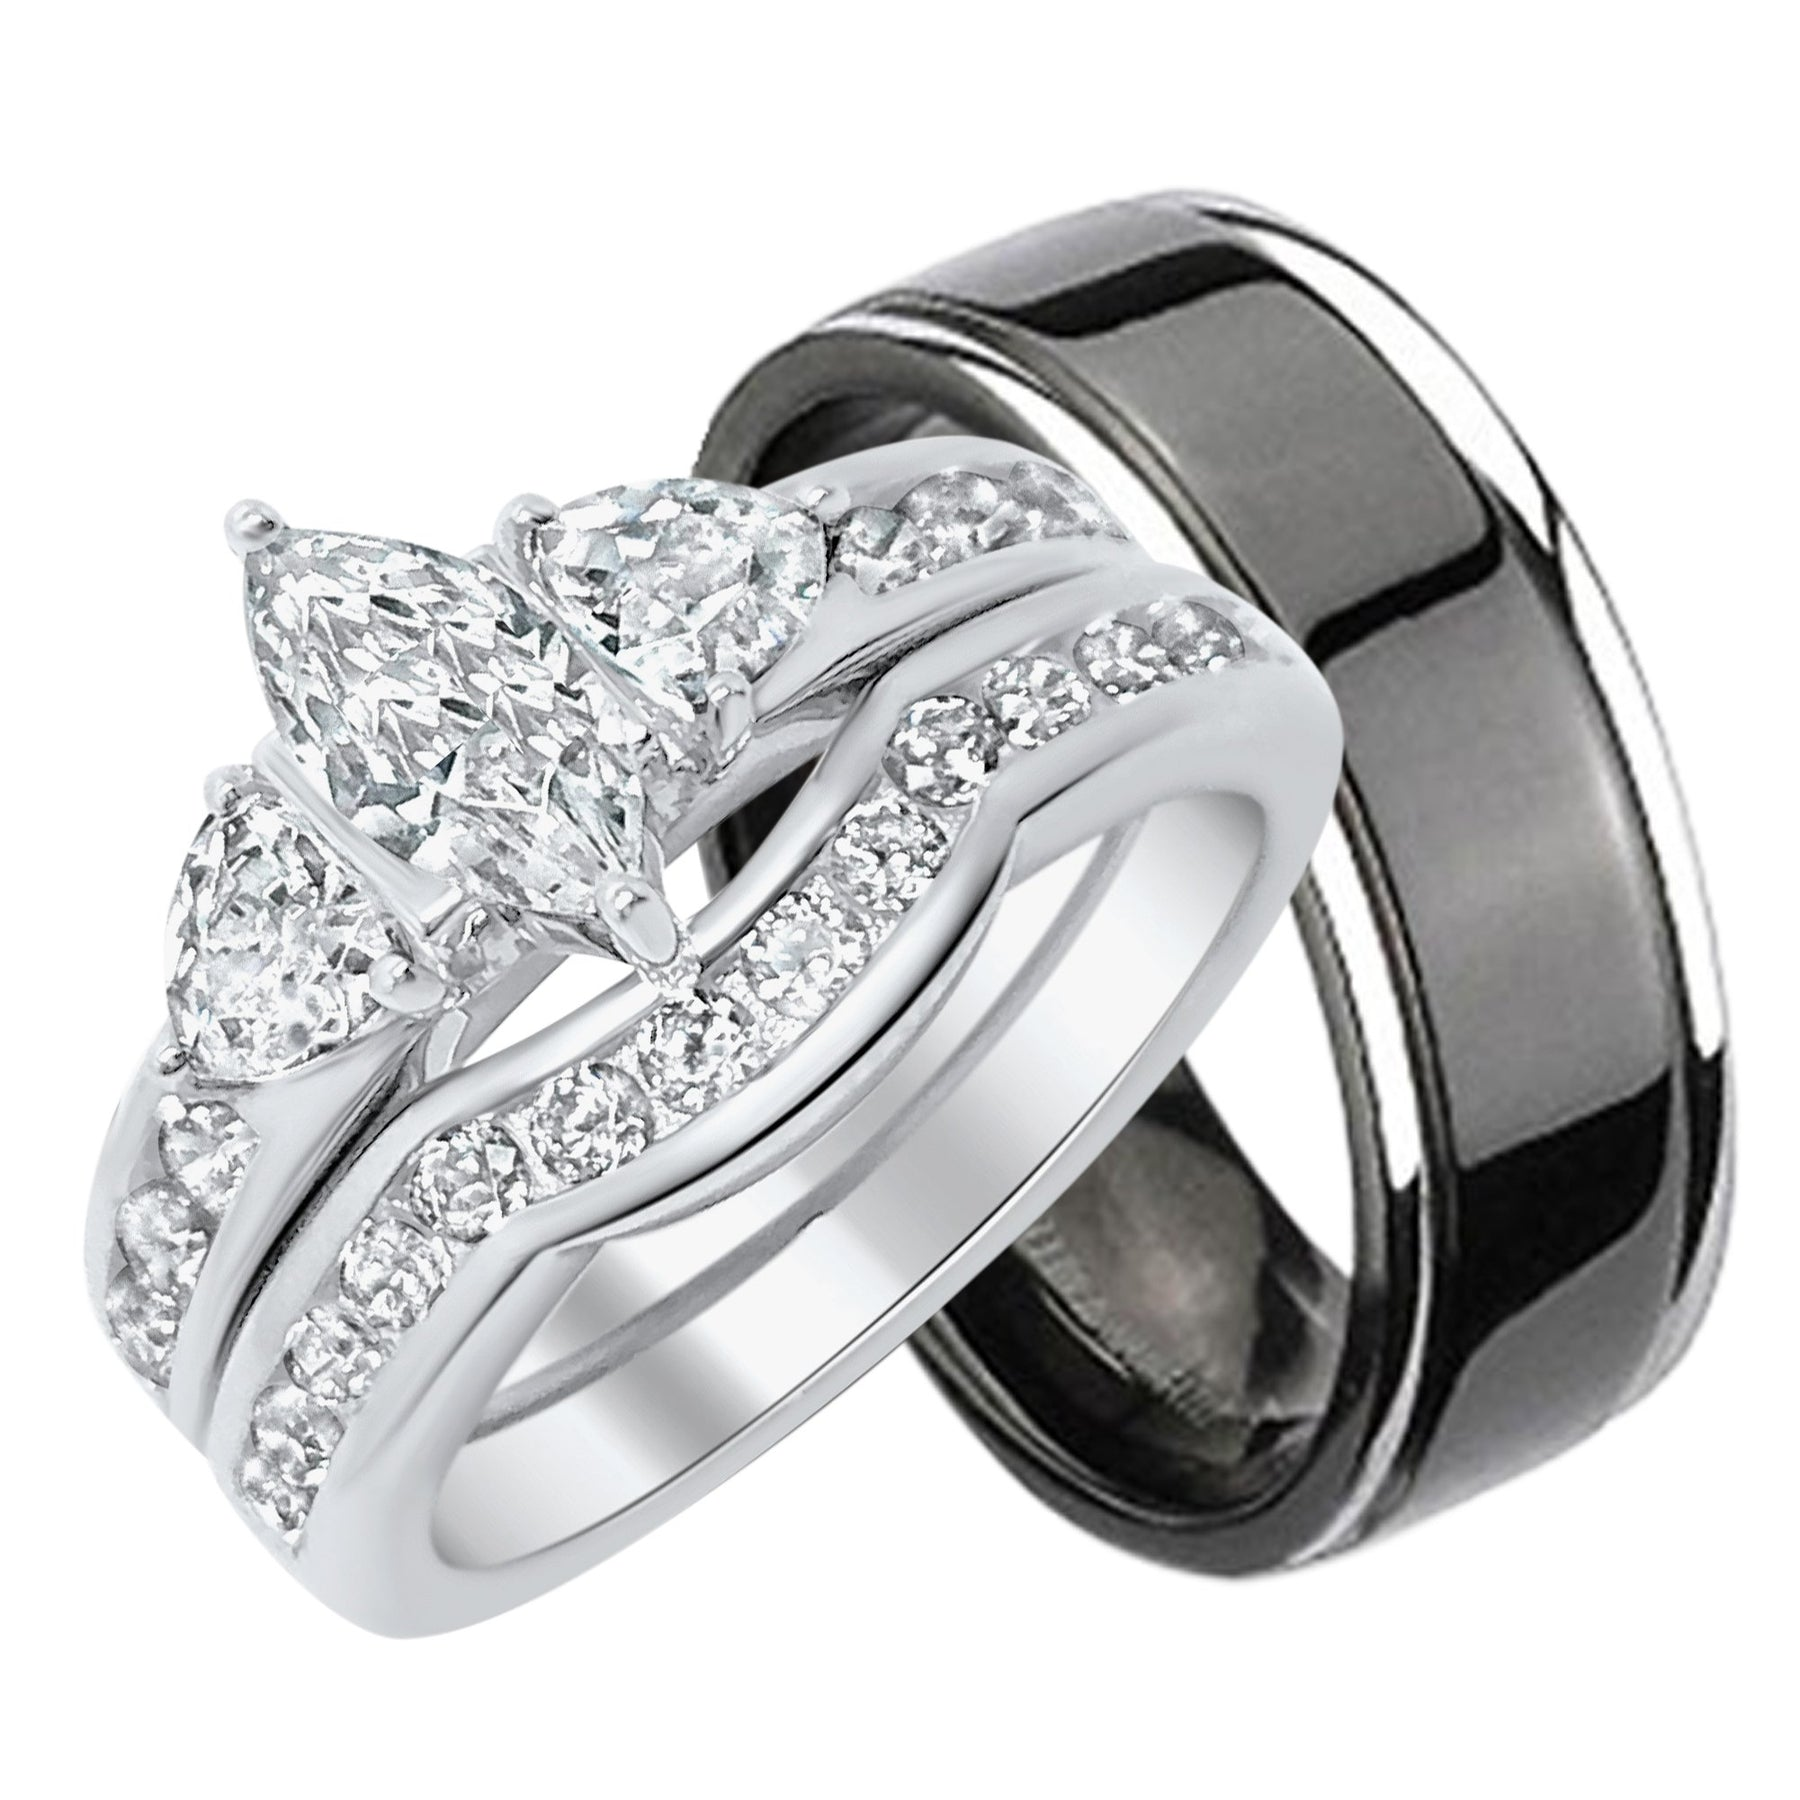 Inexpensive Wedding Rings.Inexpensive His And Her Wedding Ring Sets Look Real Not Cheap